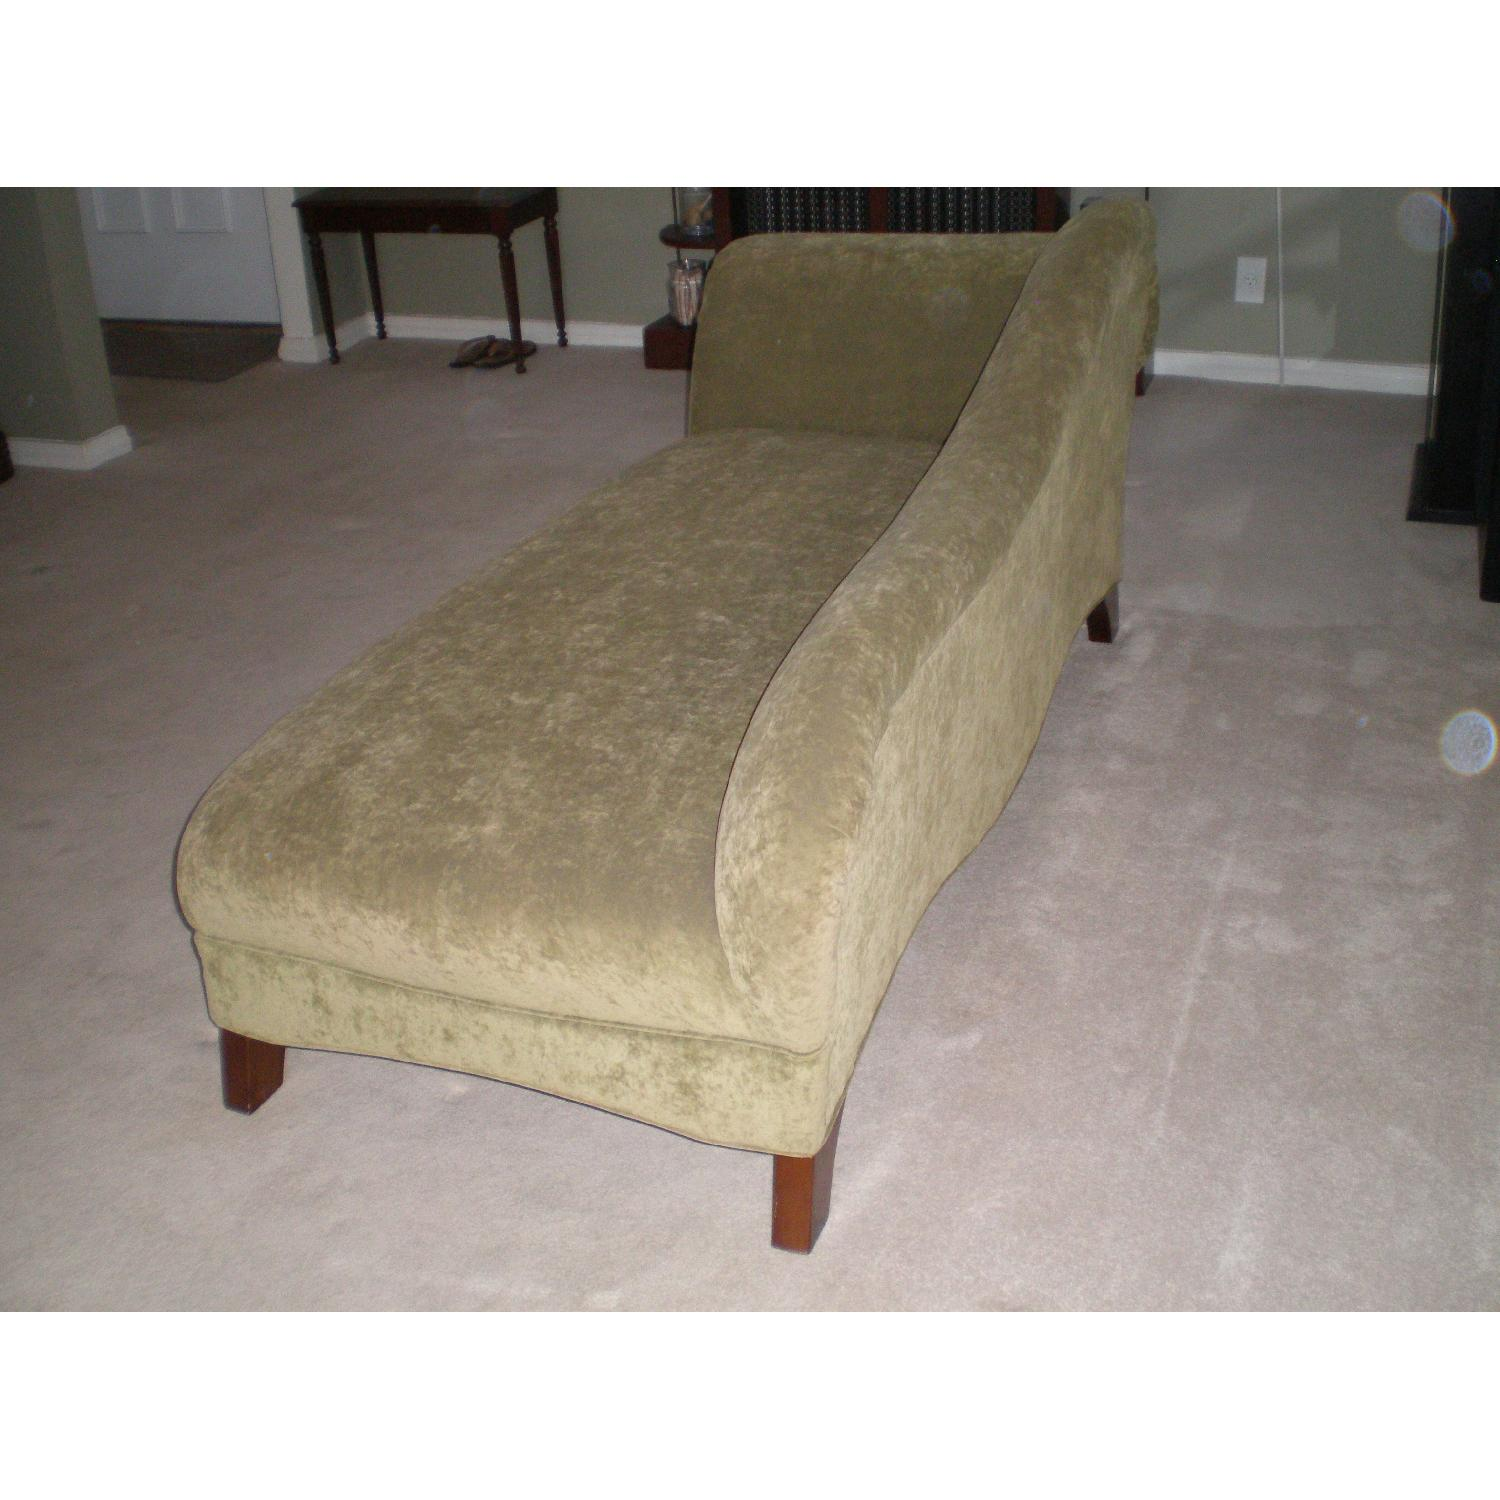 Chaise Lounge with Matching Pillow - image-3